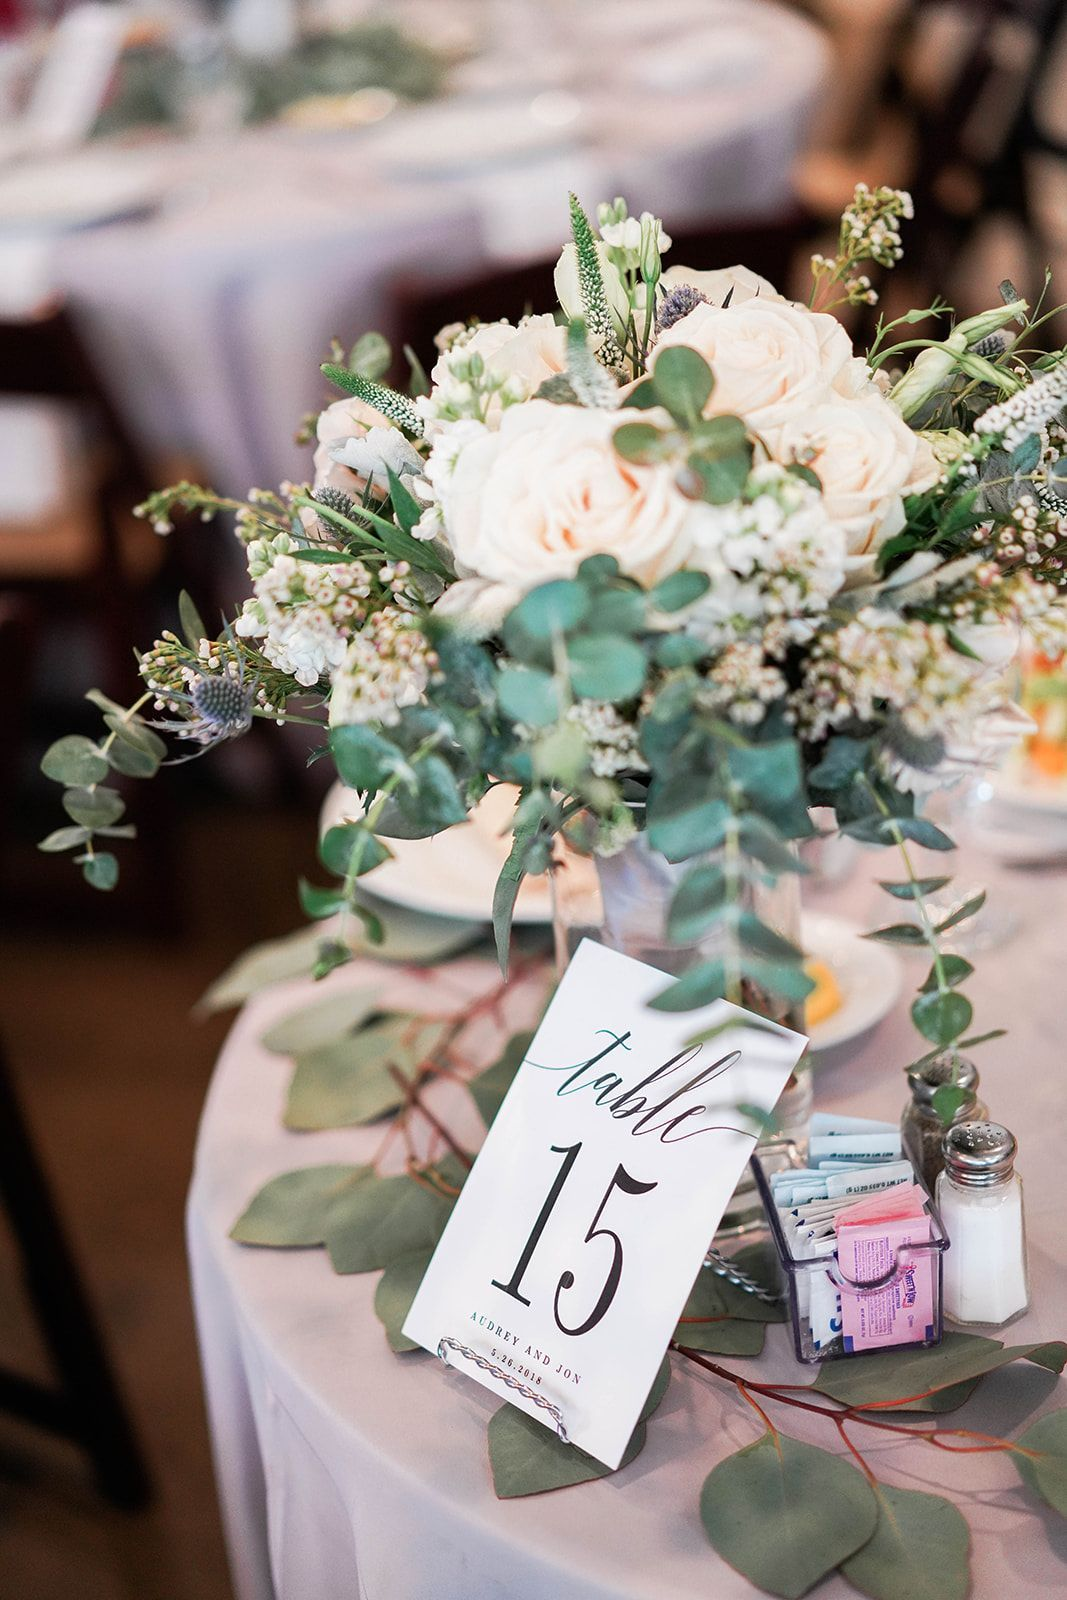 Elegant wedding decoration ideas  modern table numbers  elegant table number ideas  taupe  ivory